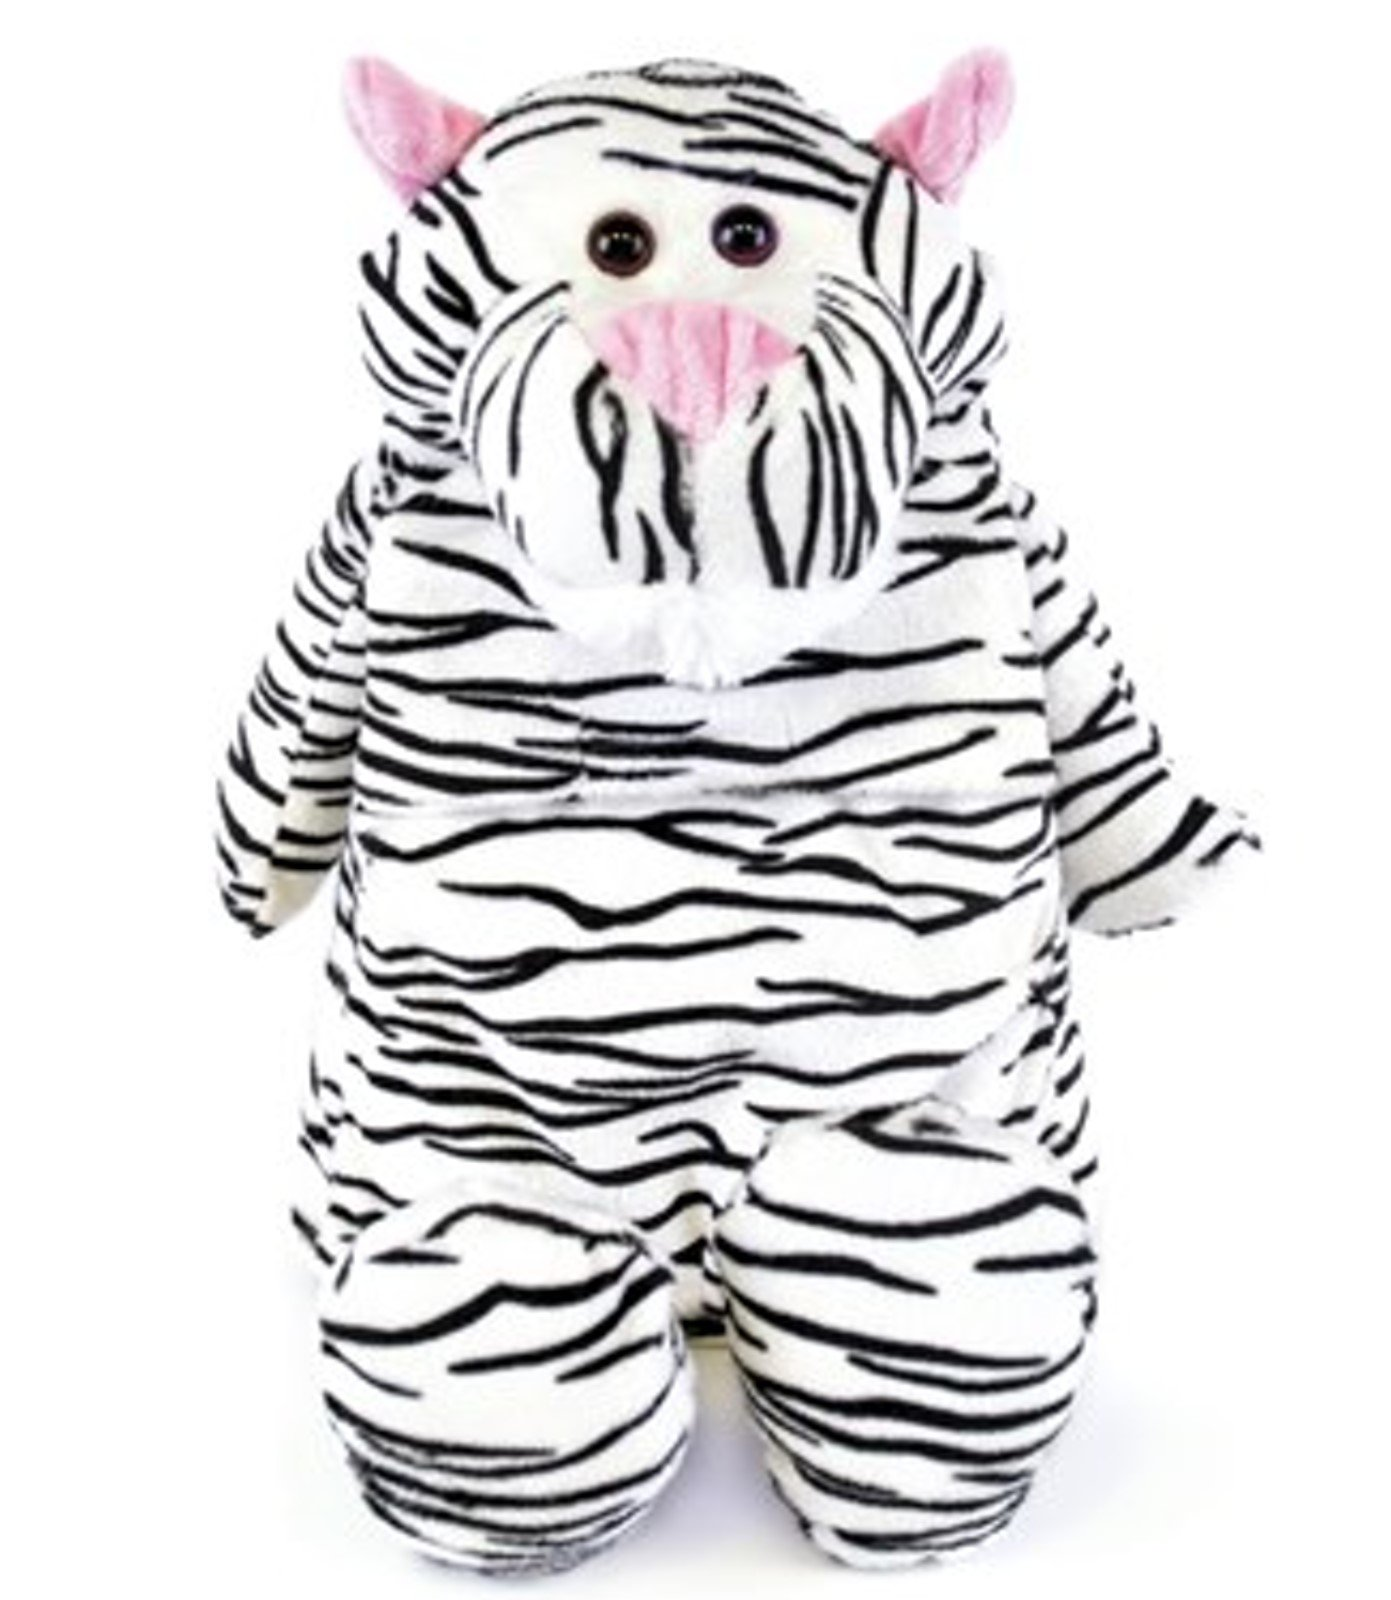 Cute Plush and Cuddly Animal Hot Water Bottles (White tiger) by Things2KeepUWarm